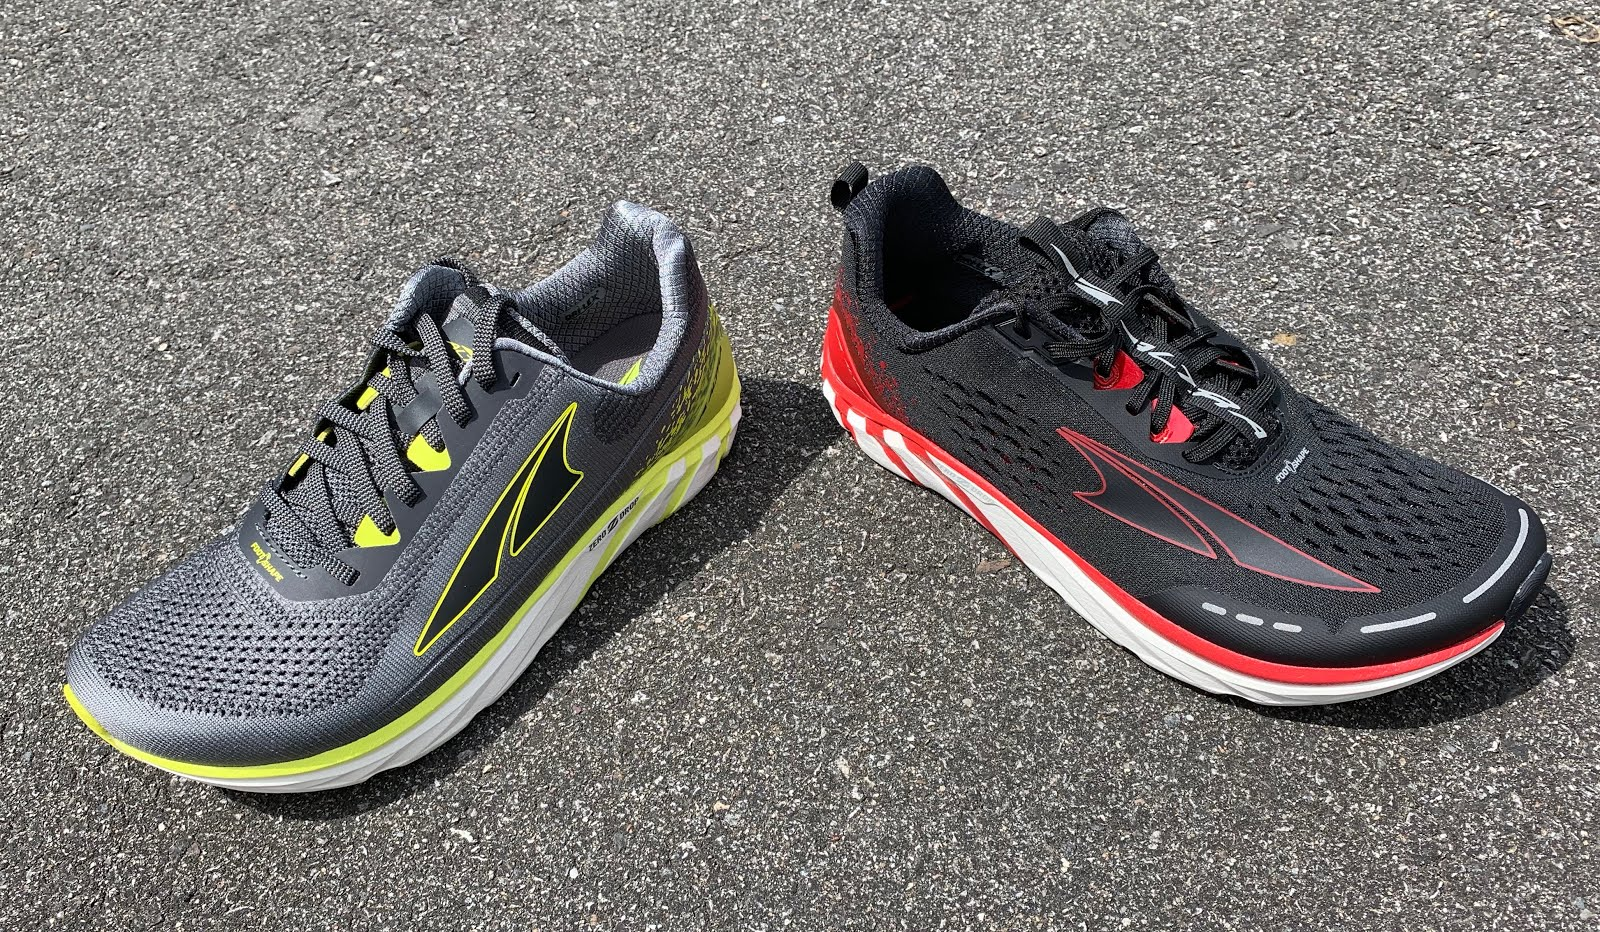 Road Trail Run Altra Torin 4 And Torin 4 Plush Multi Tester Review Approachable Zero Drop In Two Distinct Flavors